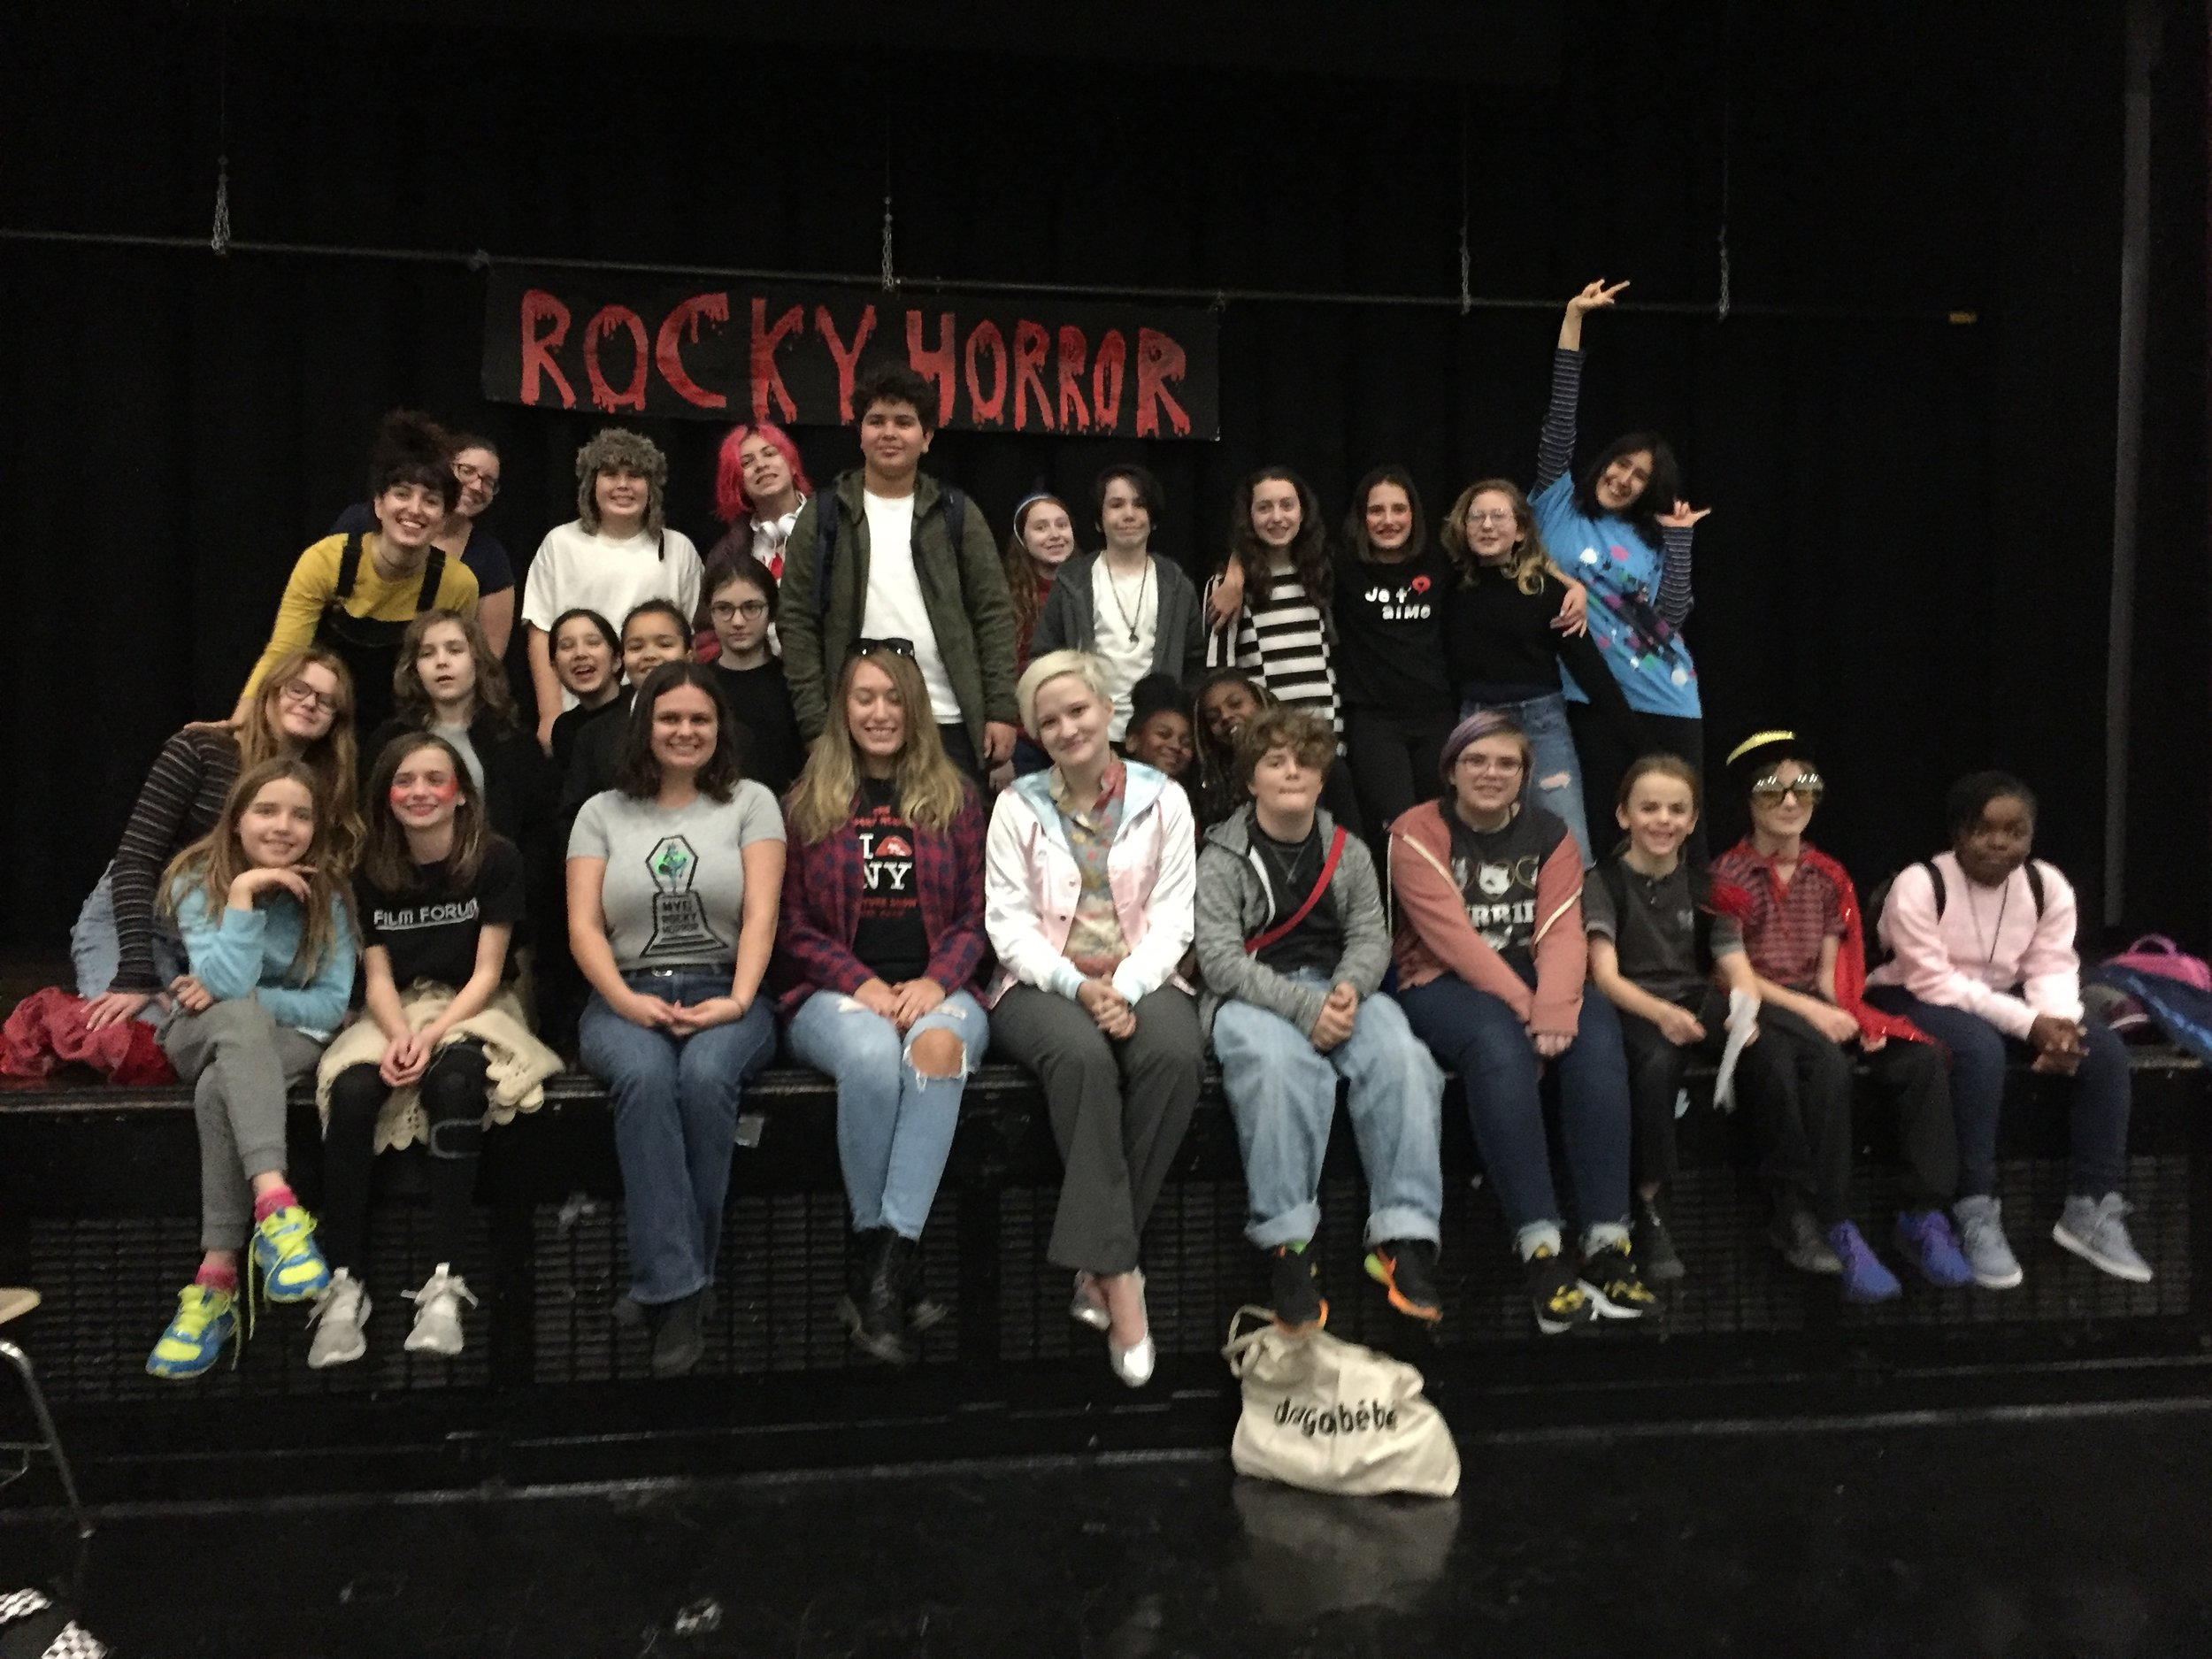 ICE Drama Club performs excerpts from ROCKY HORROR PICTURE SHOW